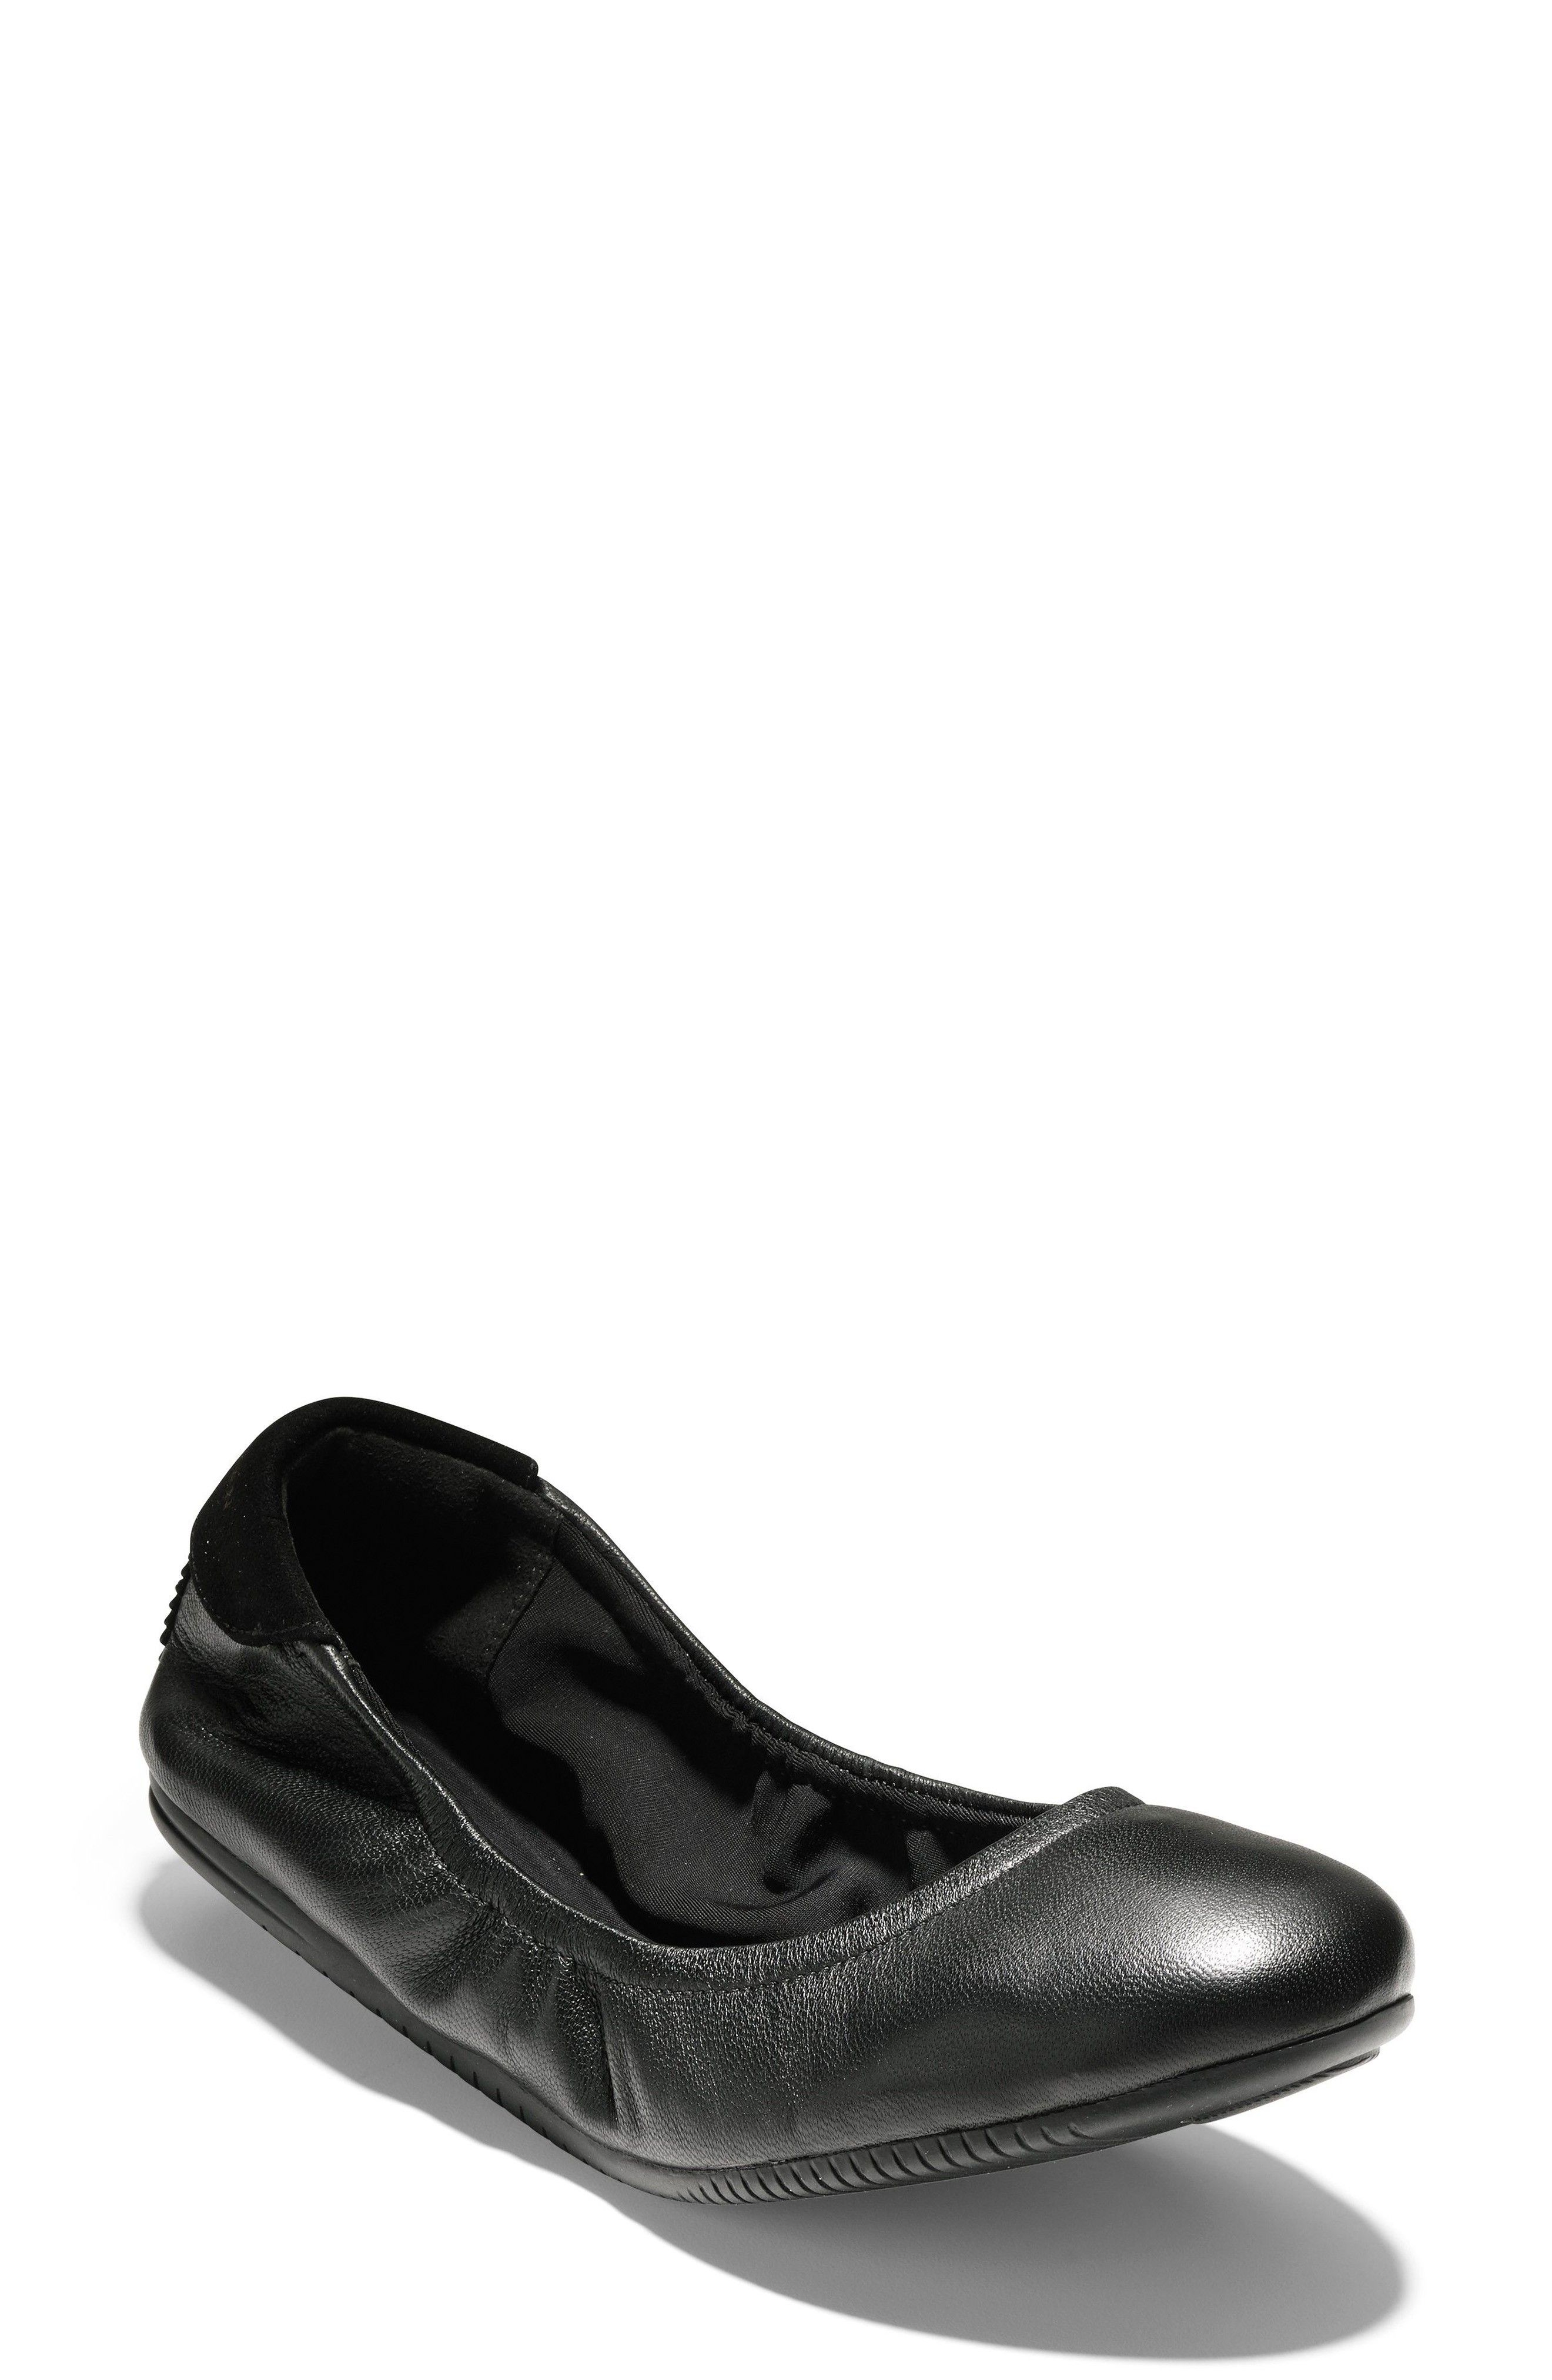 Buy COLE HAAN Studiogrand Ballet Flat online. New COLE HAAN Shoes. [$160]